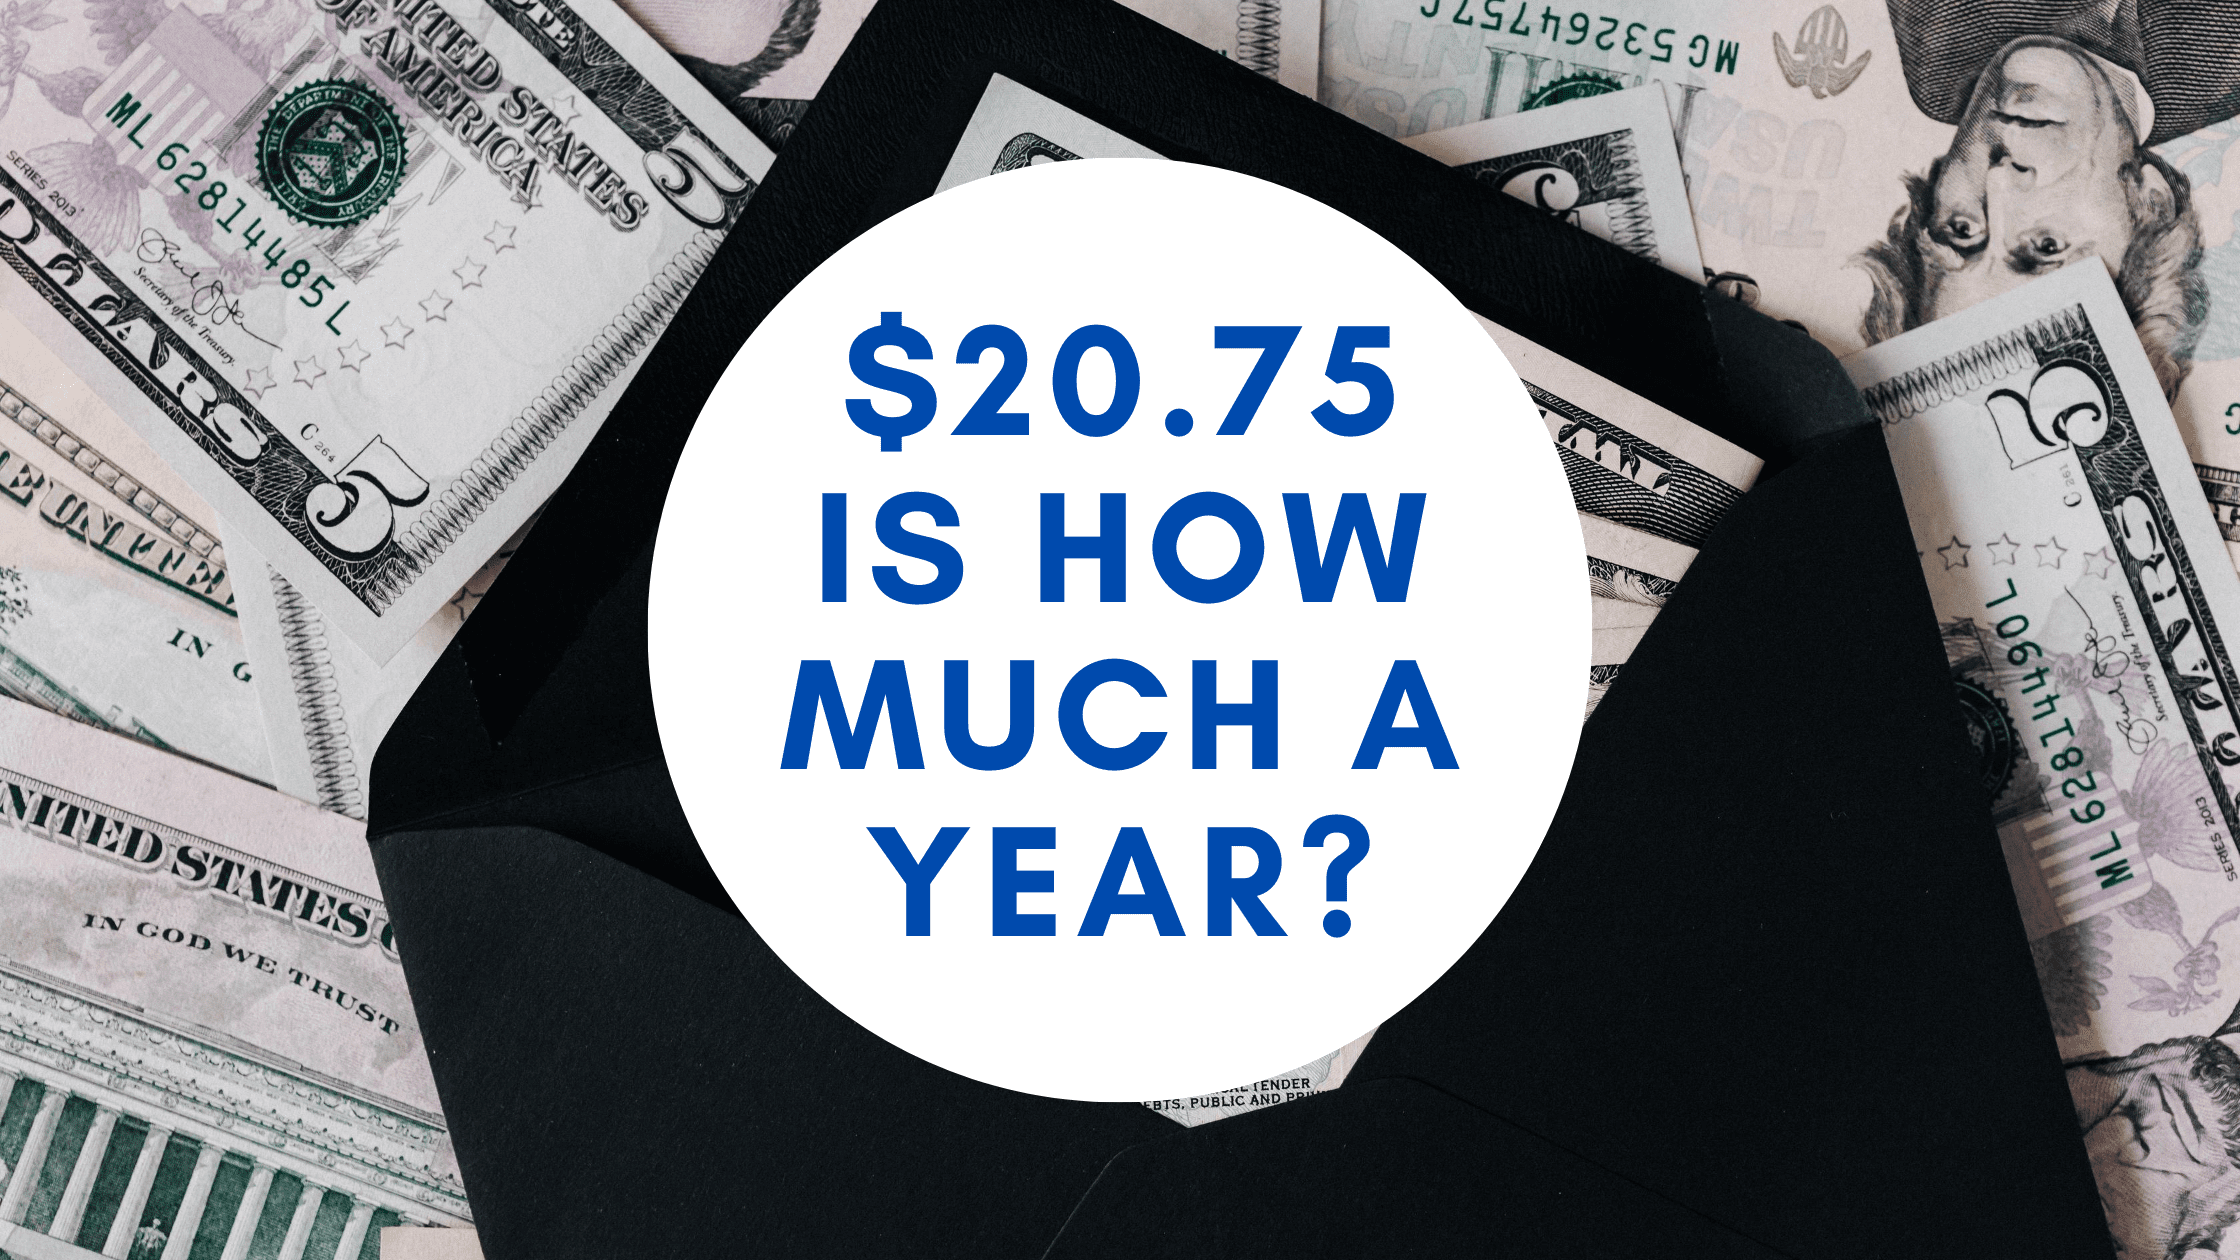 20.75 dollars an hour is how much a year _ hourly to yearly salary conversion